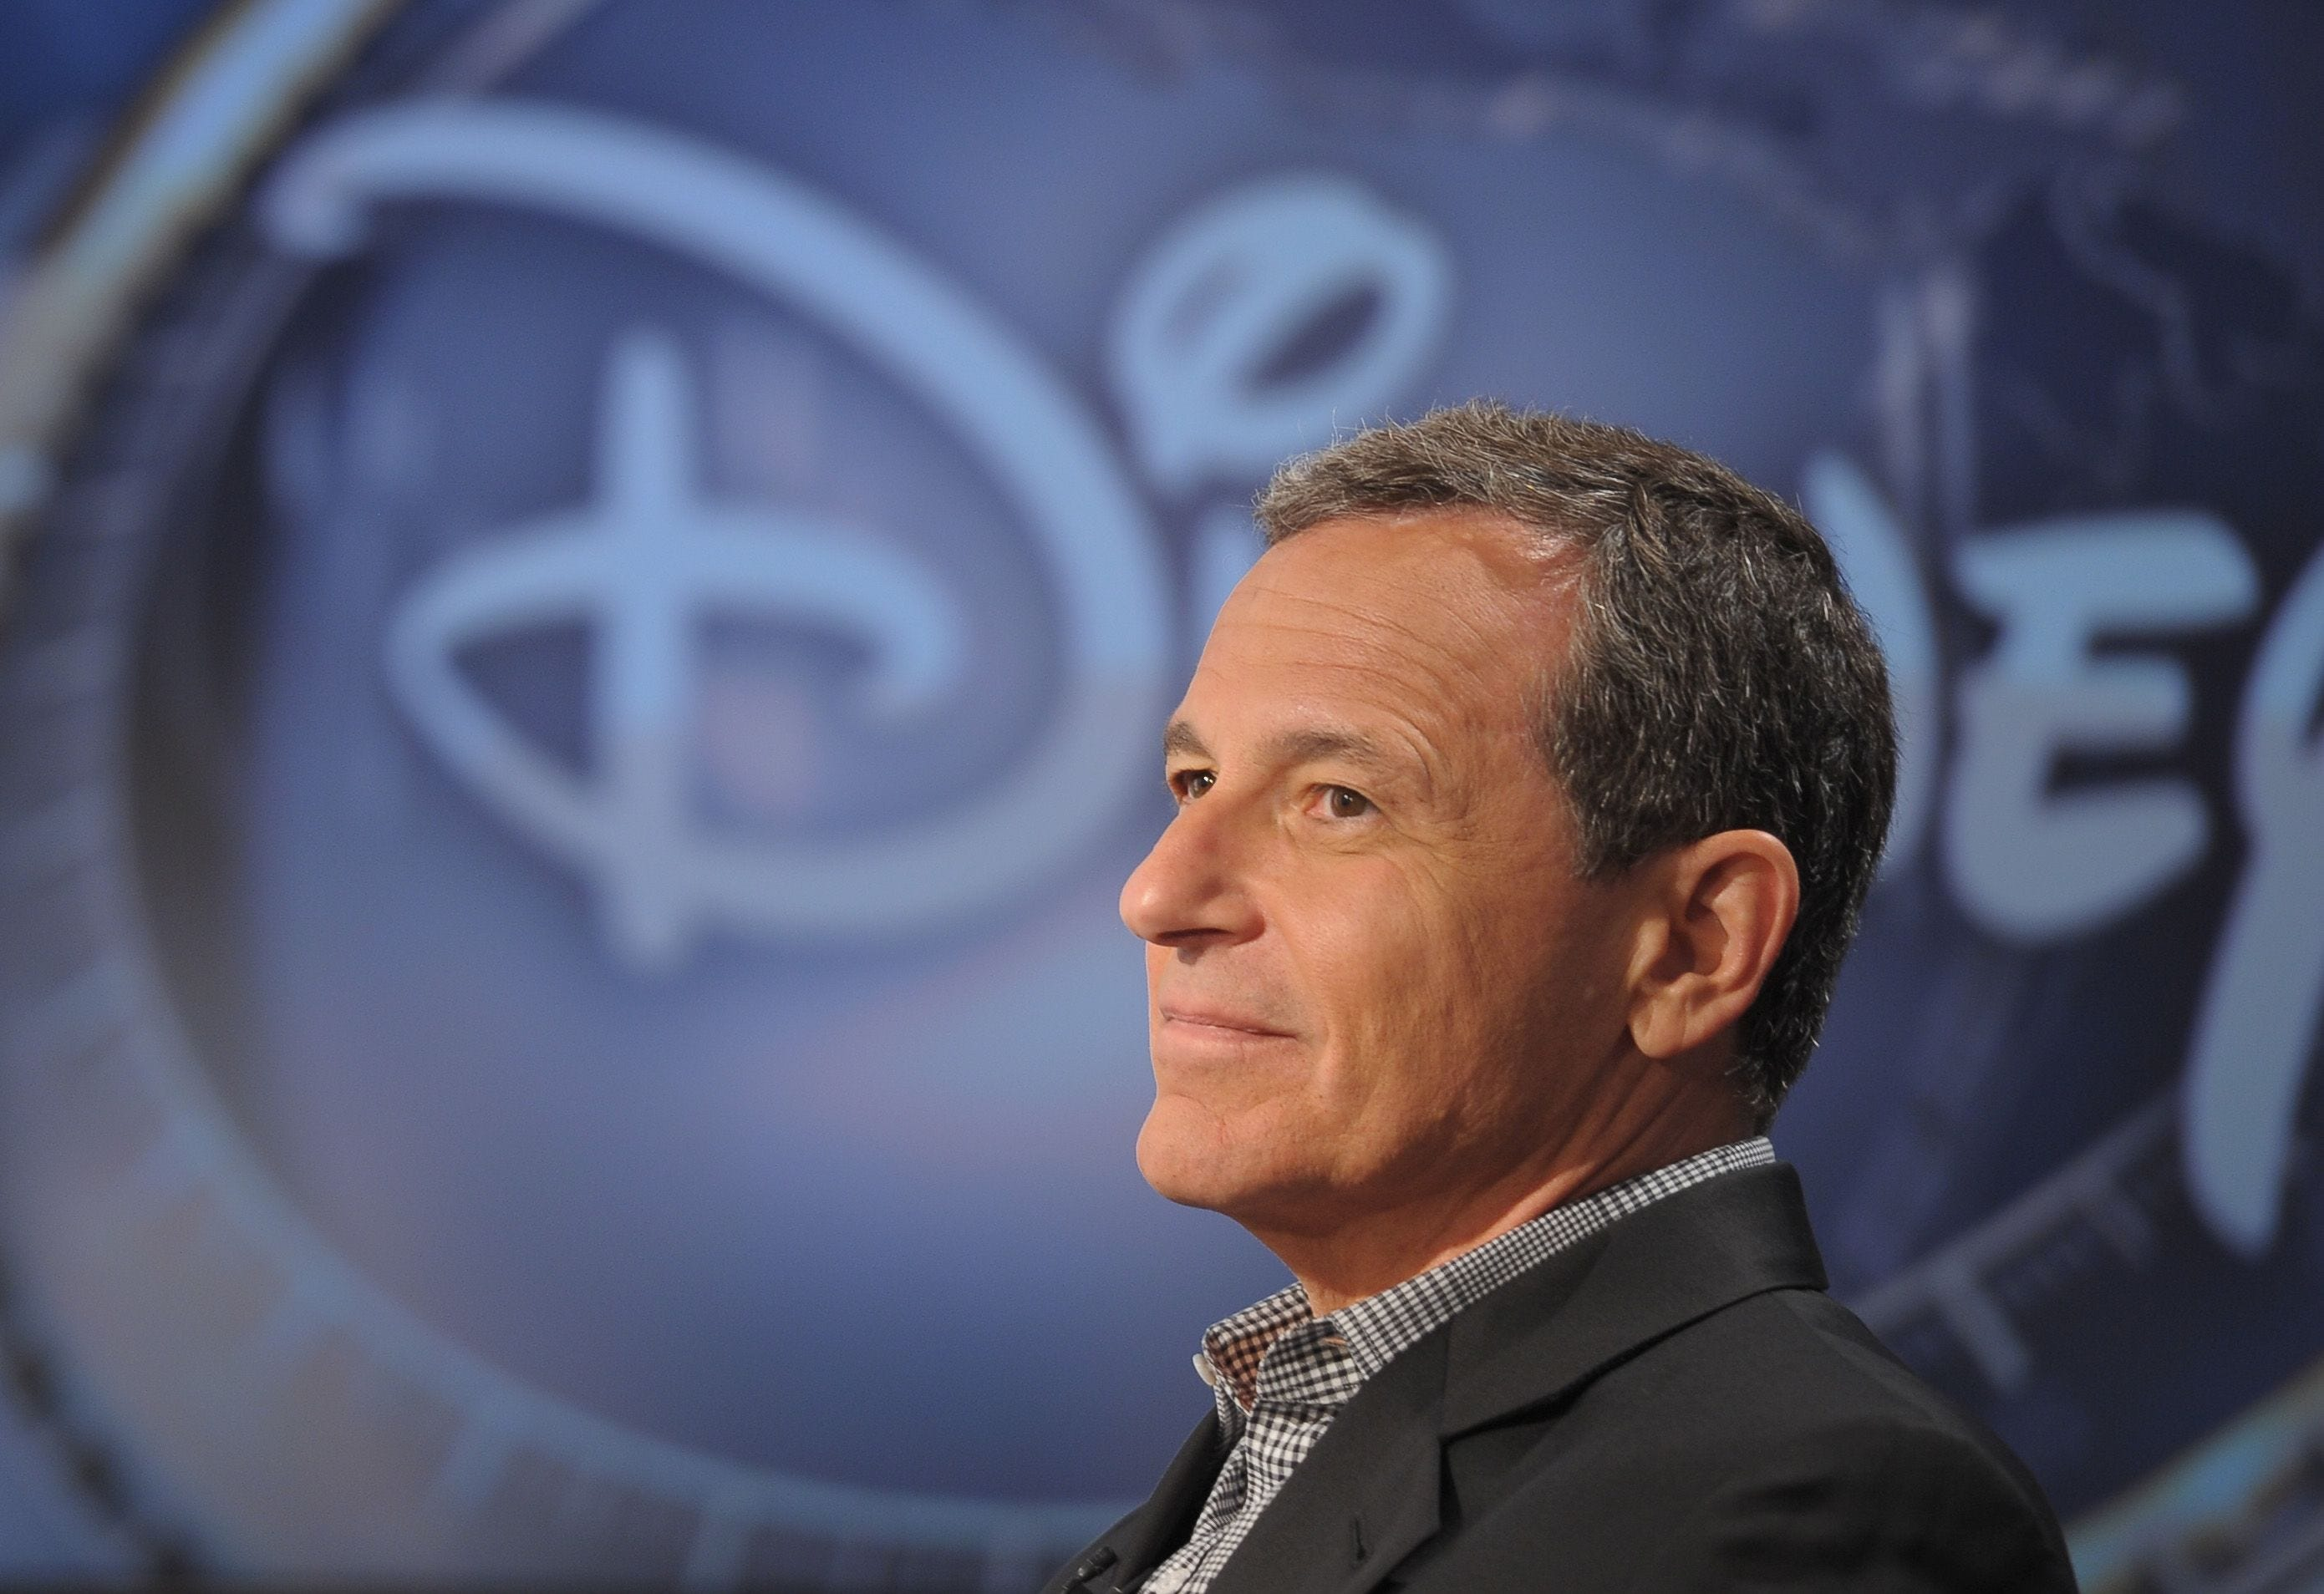 Robert Iger will remain Disney CEO into 2019